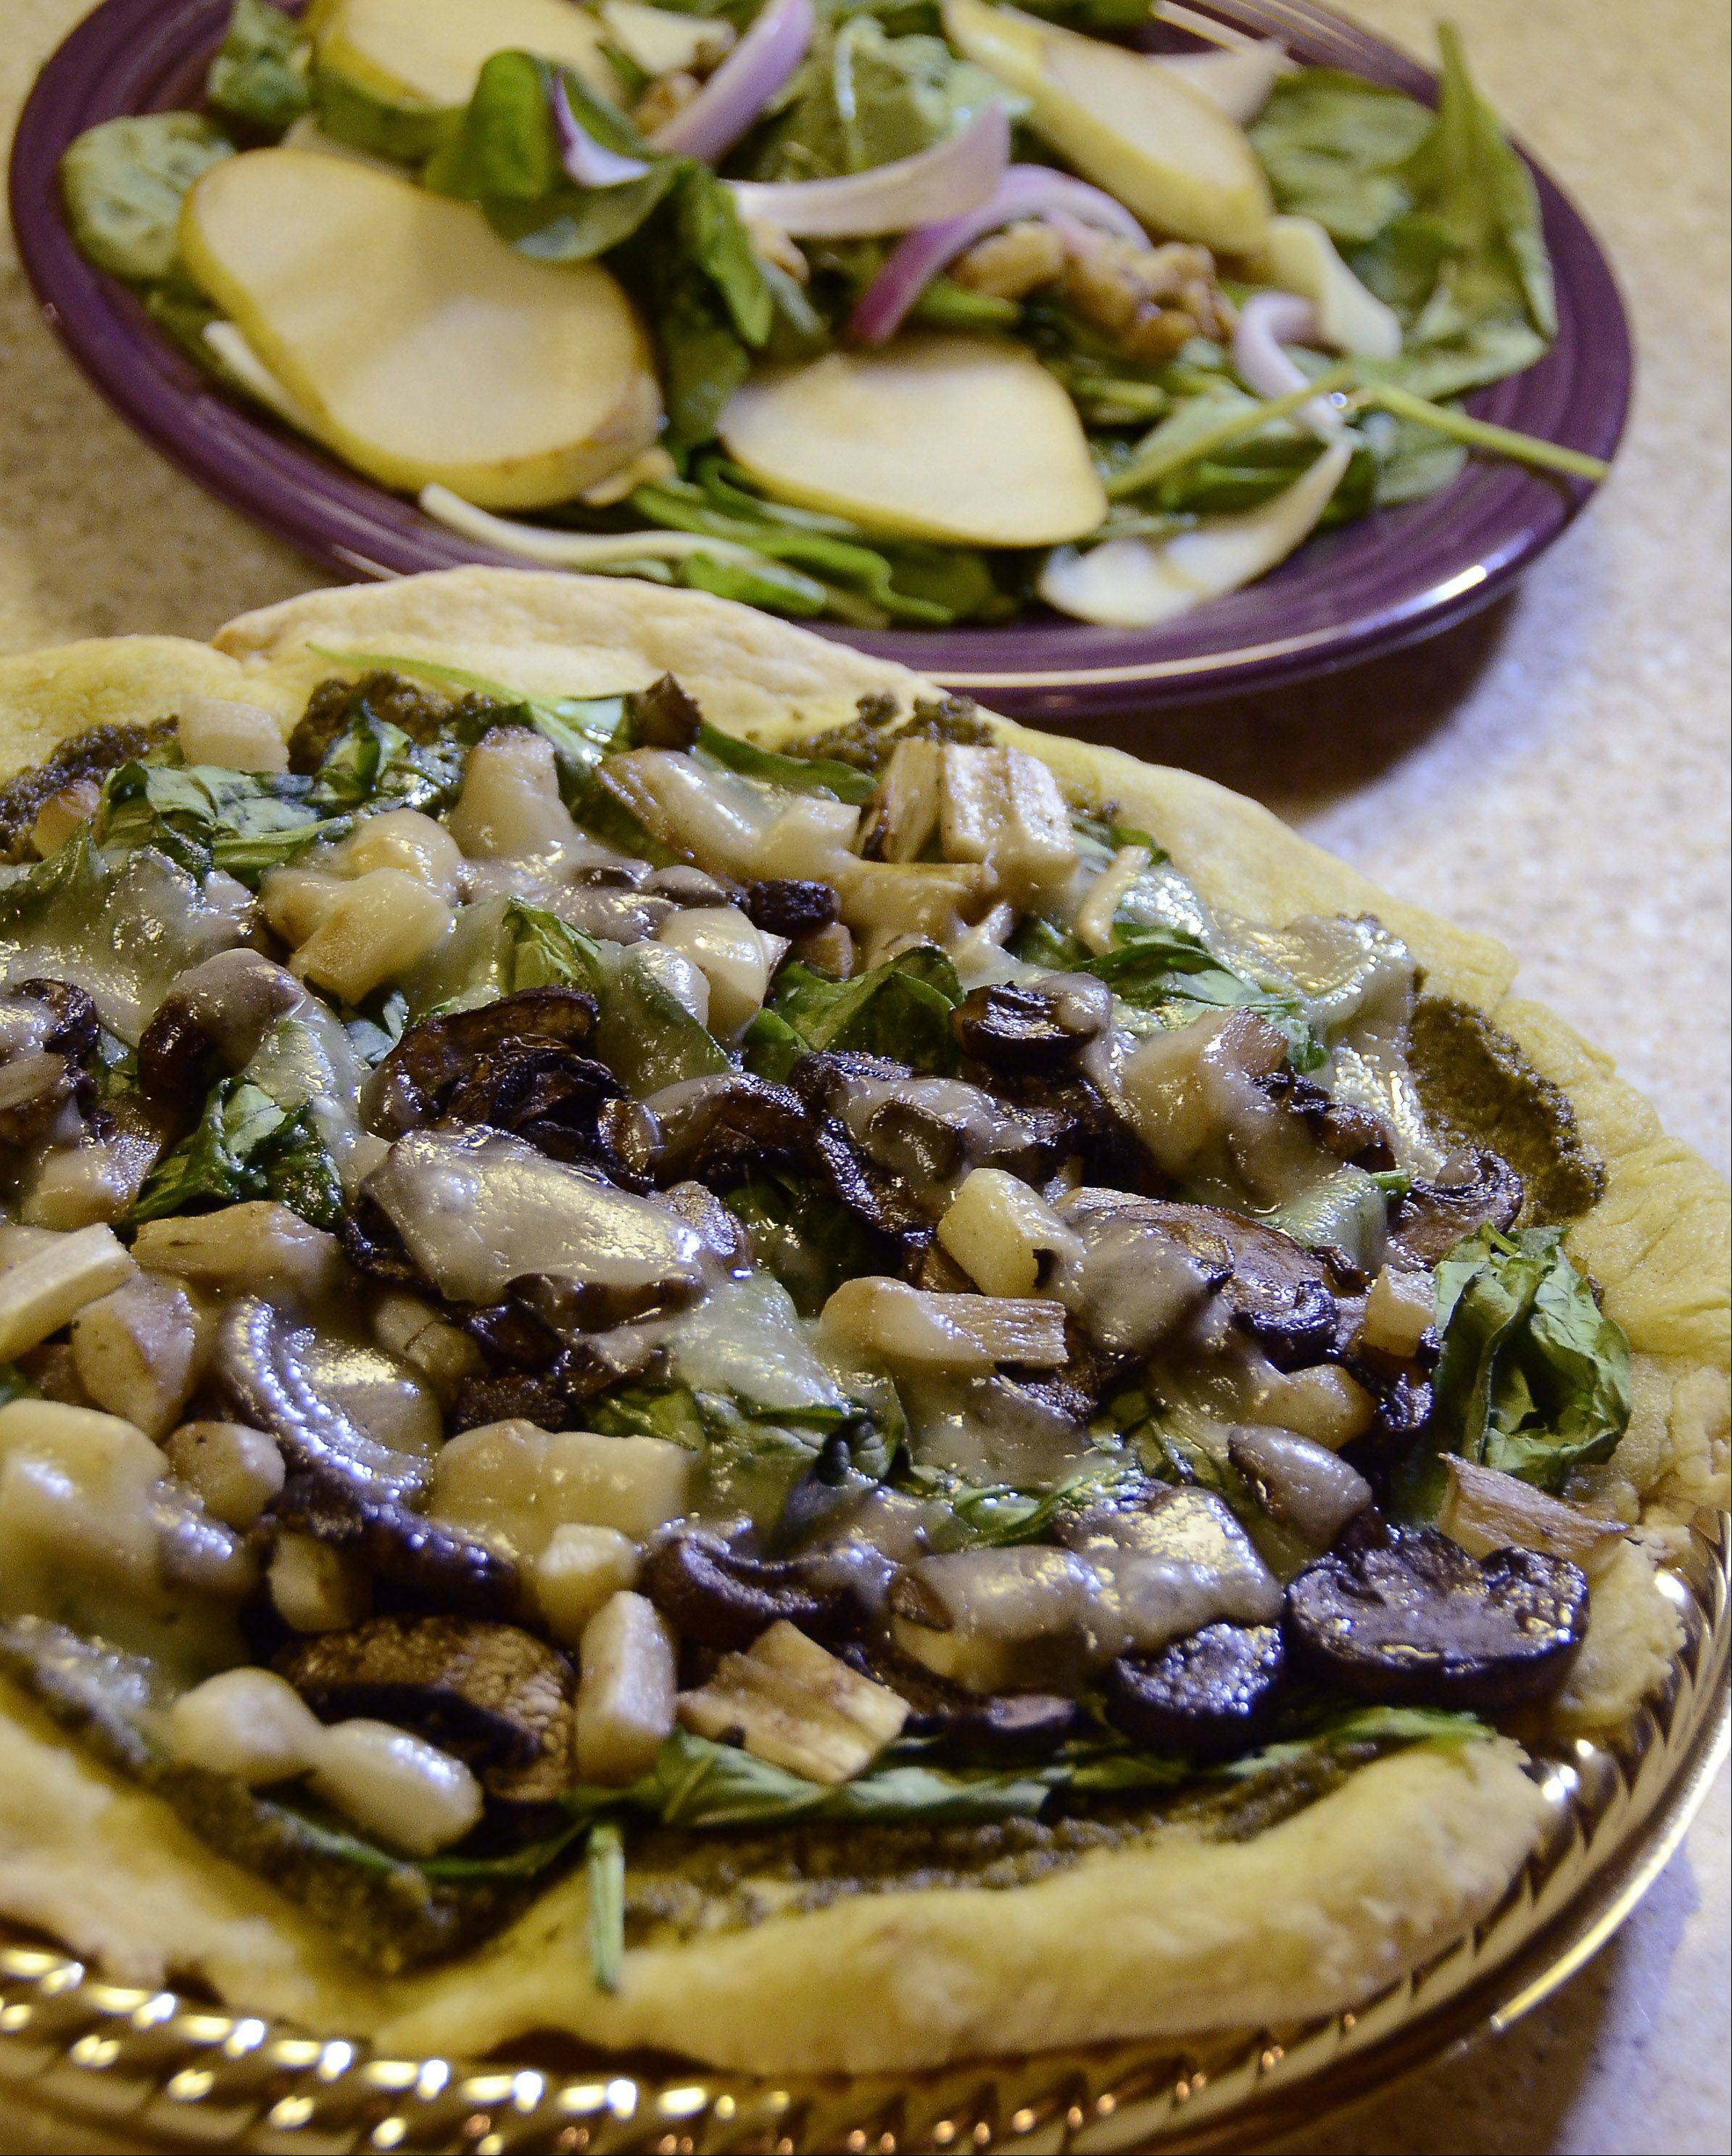 Michelle Abraham's roasted salsify and spinach pizza won the gluten-free pizza dough challenge.